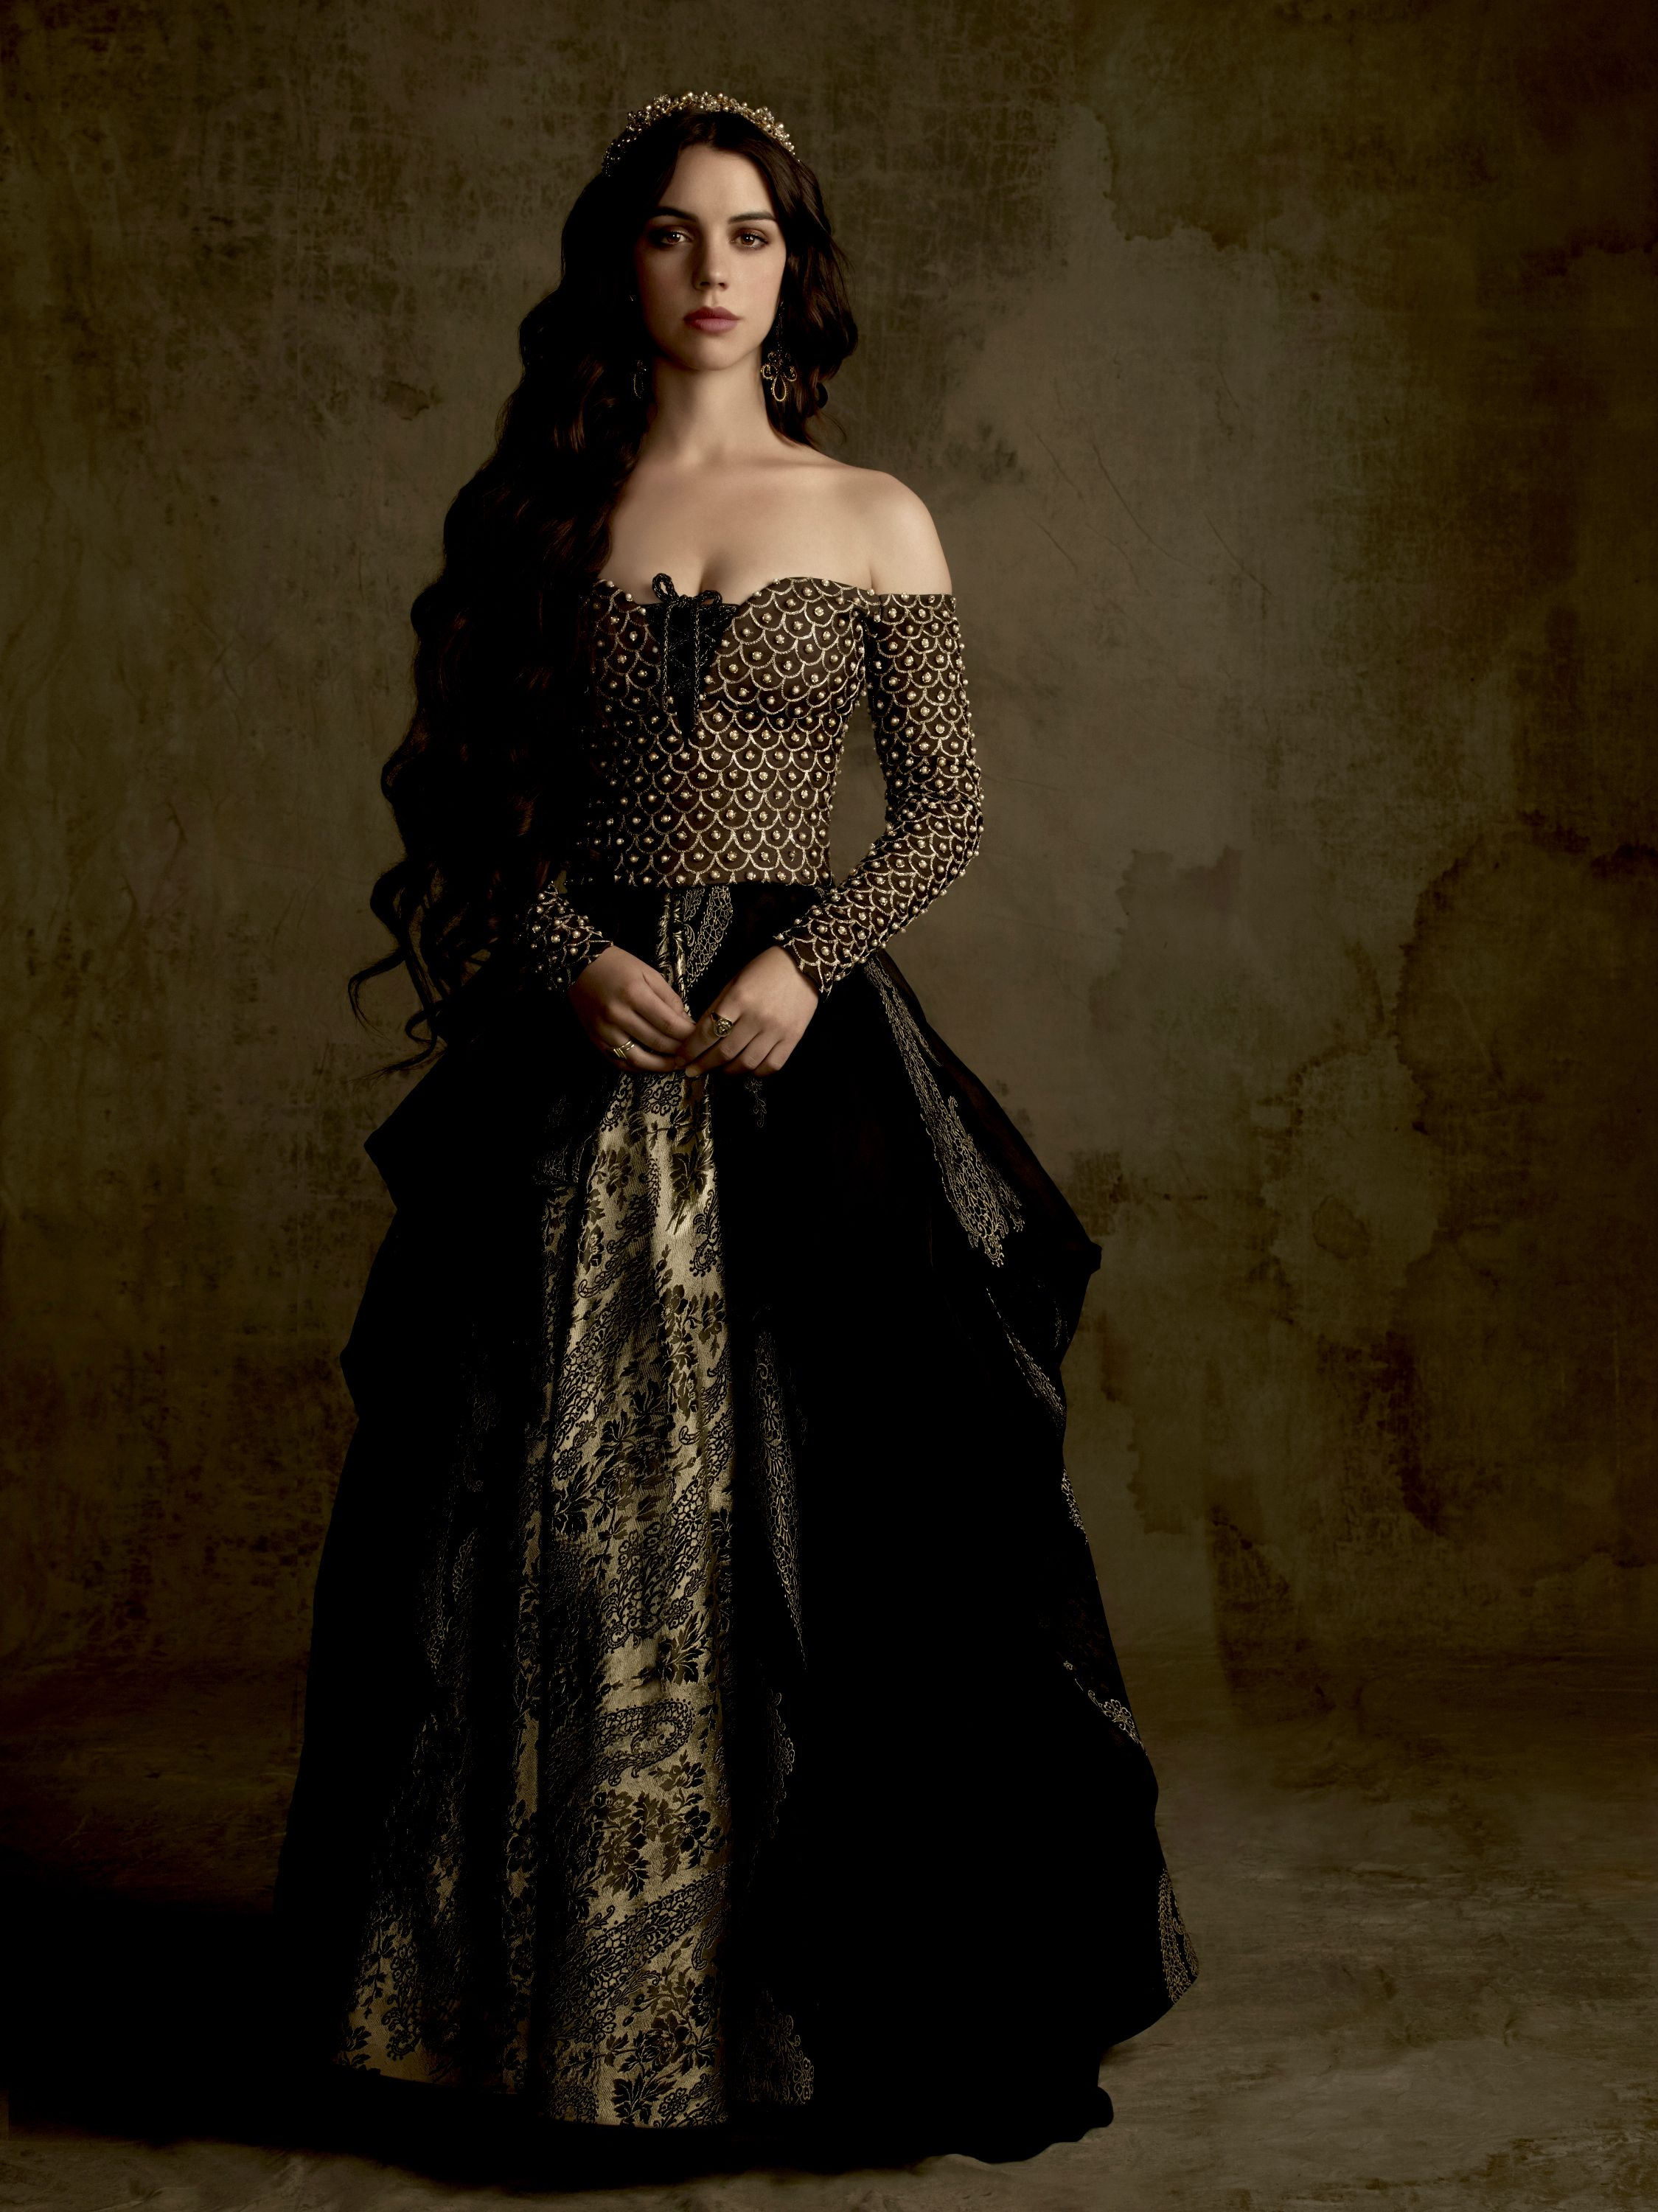 Adelaide Kane as Queen Mary Stuart in \